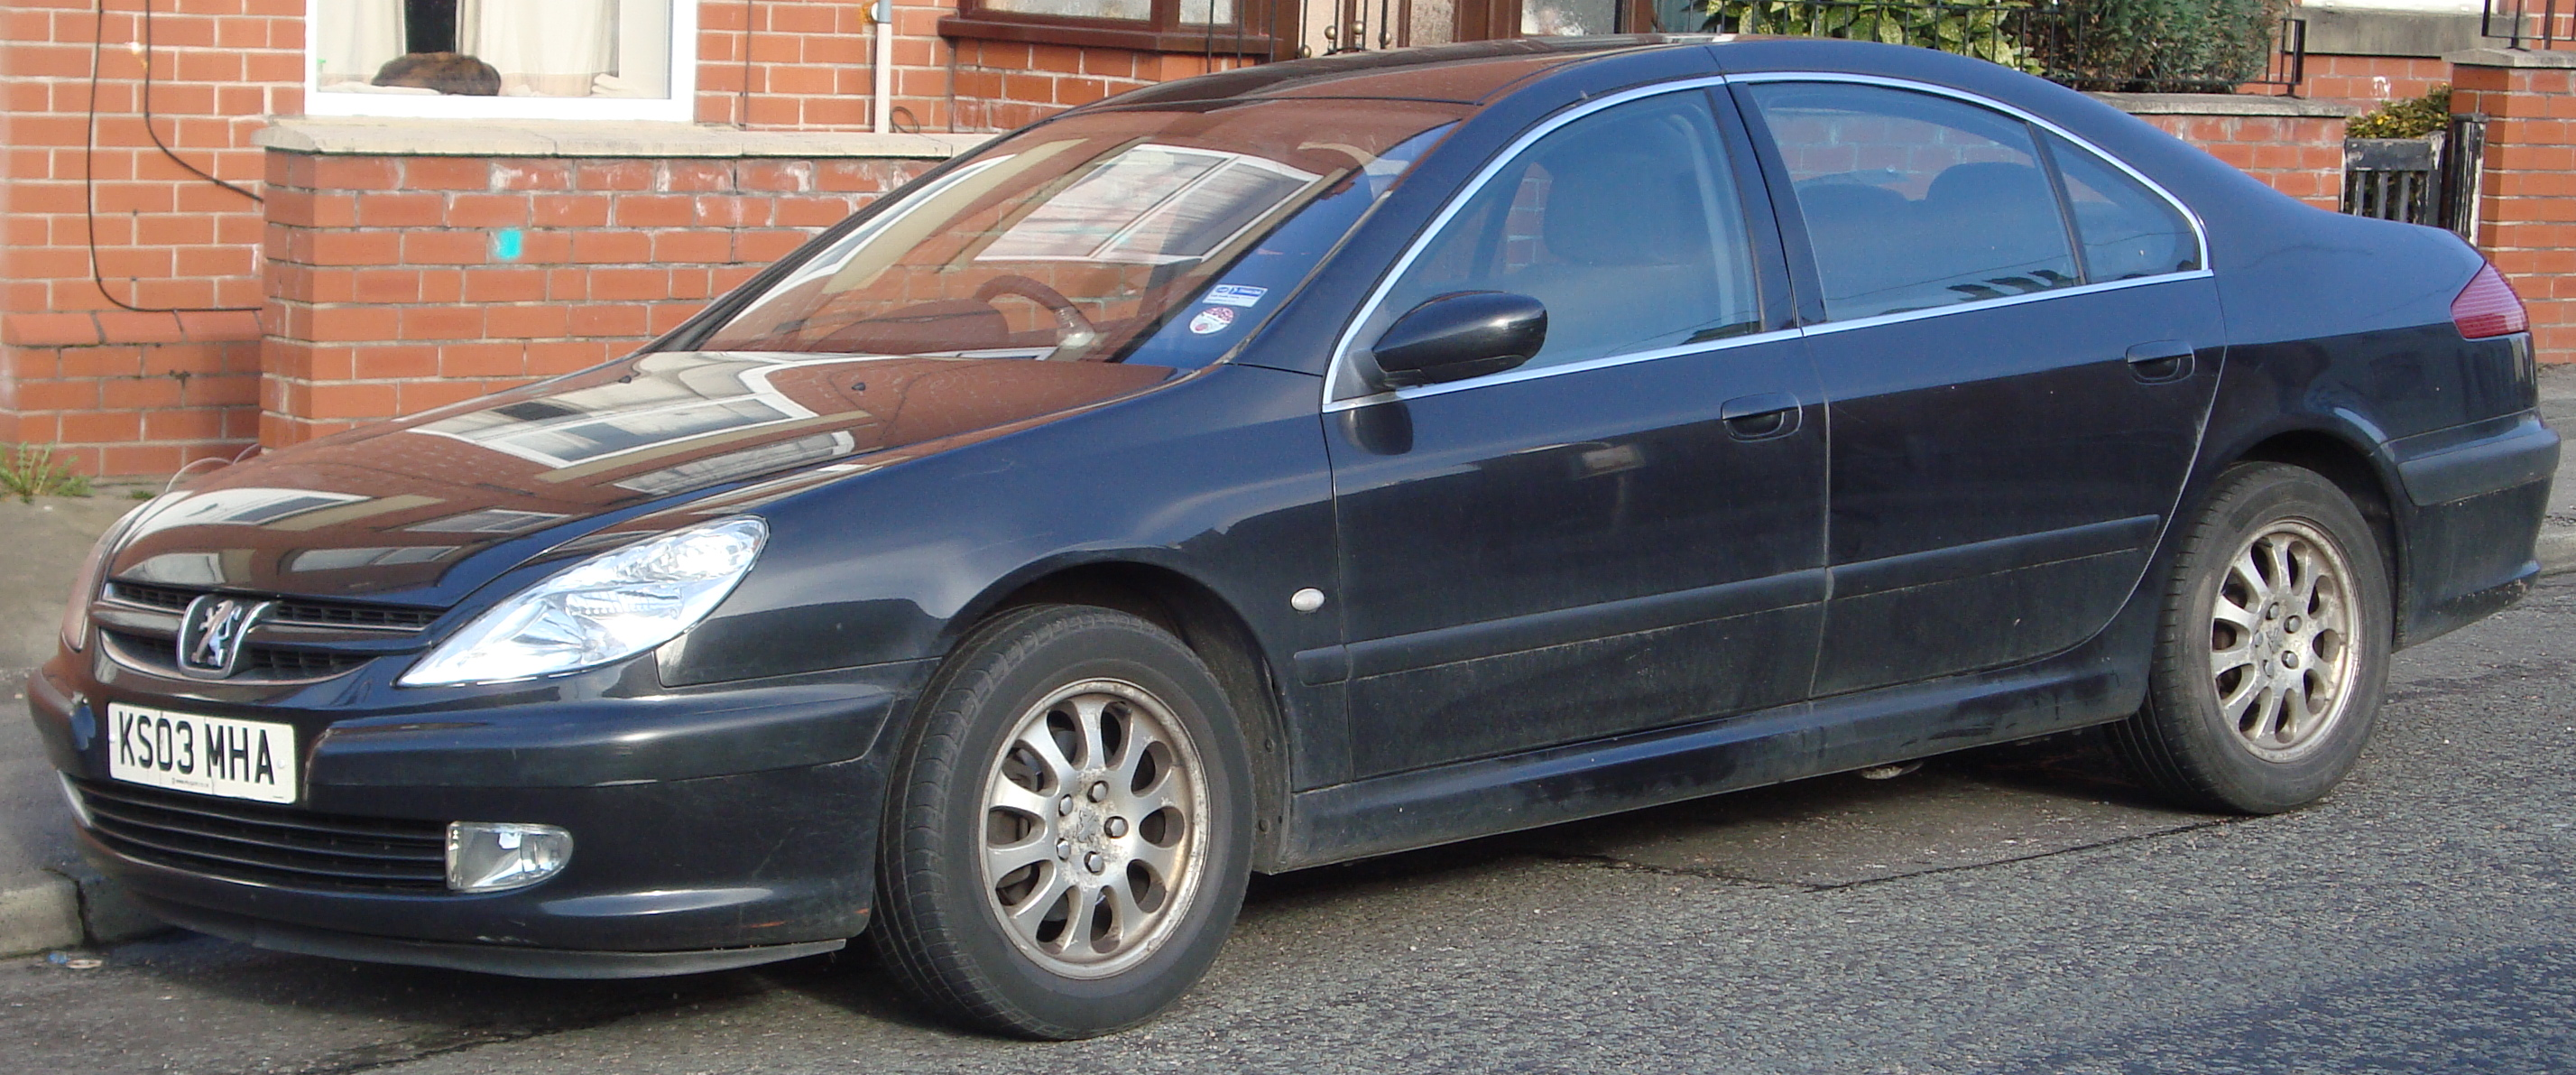 Photo of a Peugeot 607 similar to the one found at Nortre Dame.